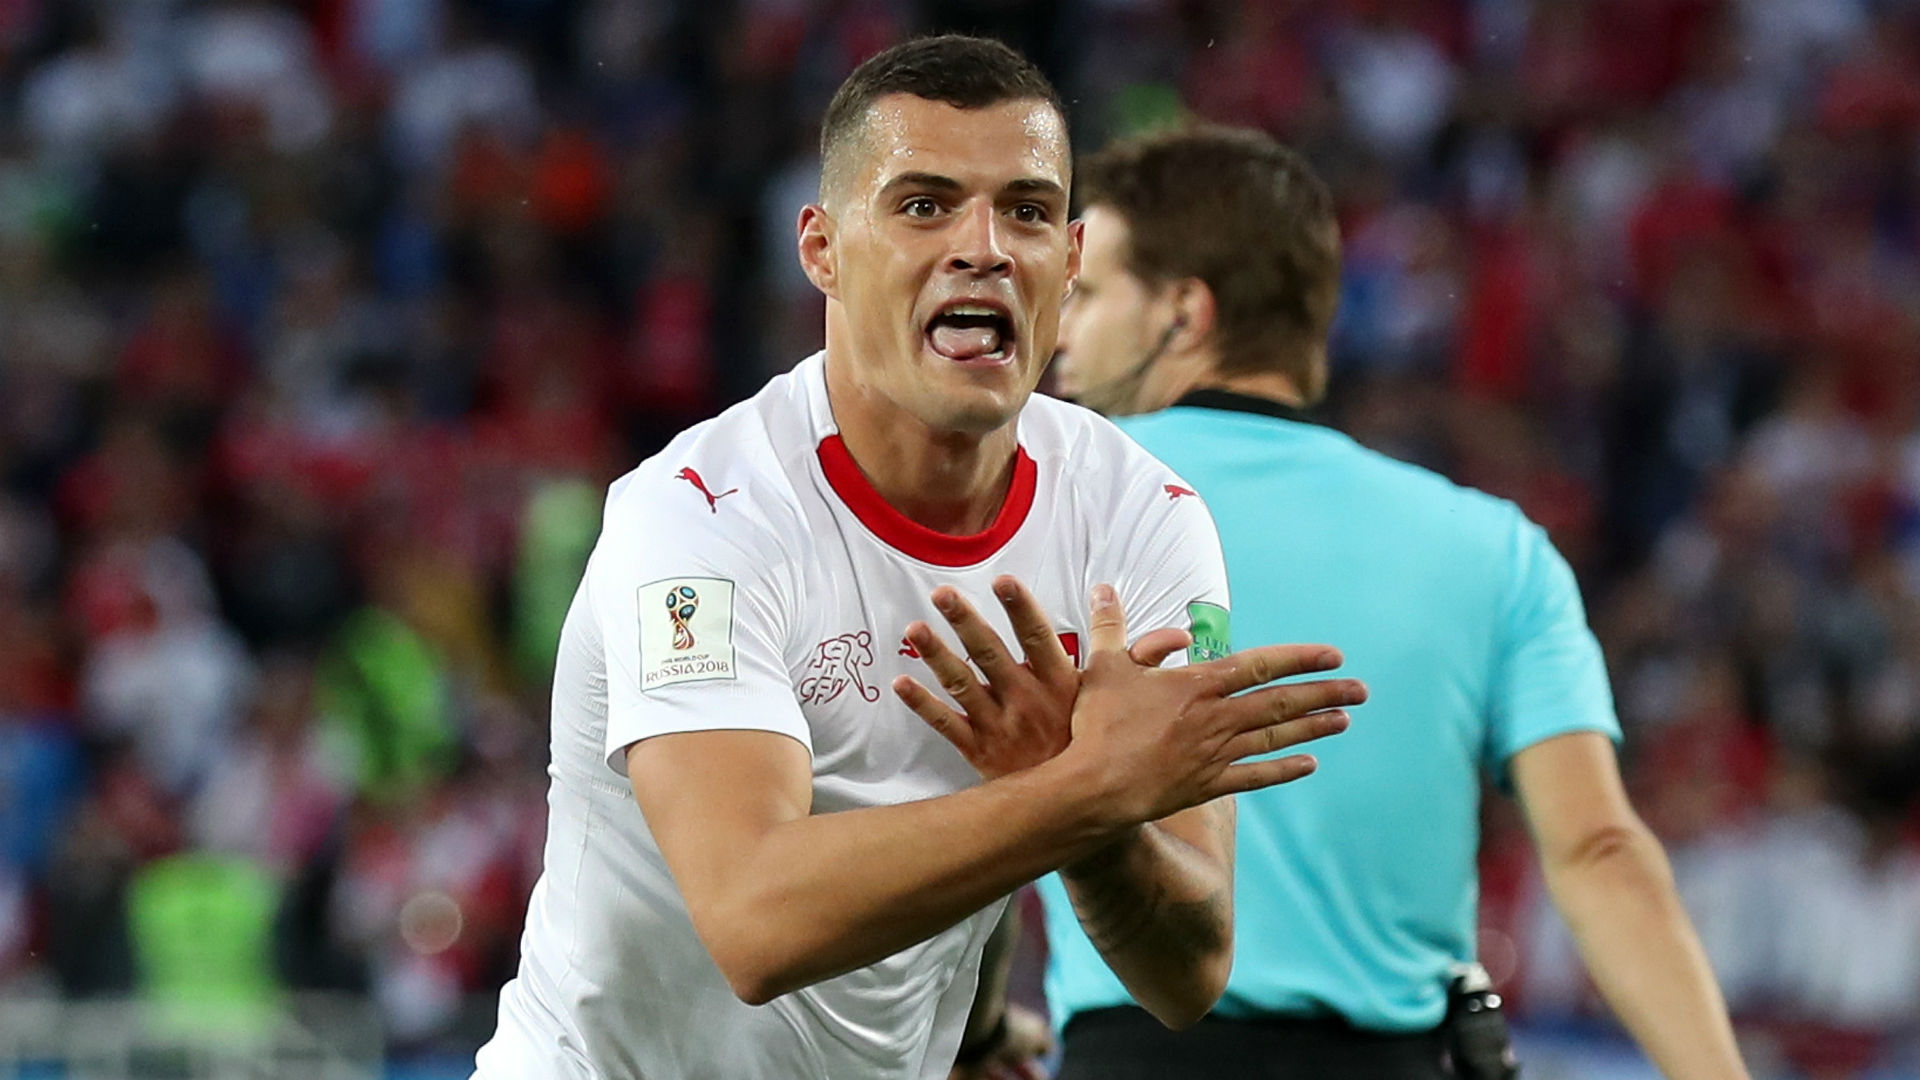 Federation Internationale de Football Association investigates Shaqiri and Xhaka celebrations